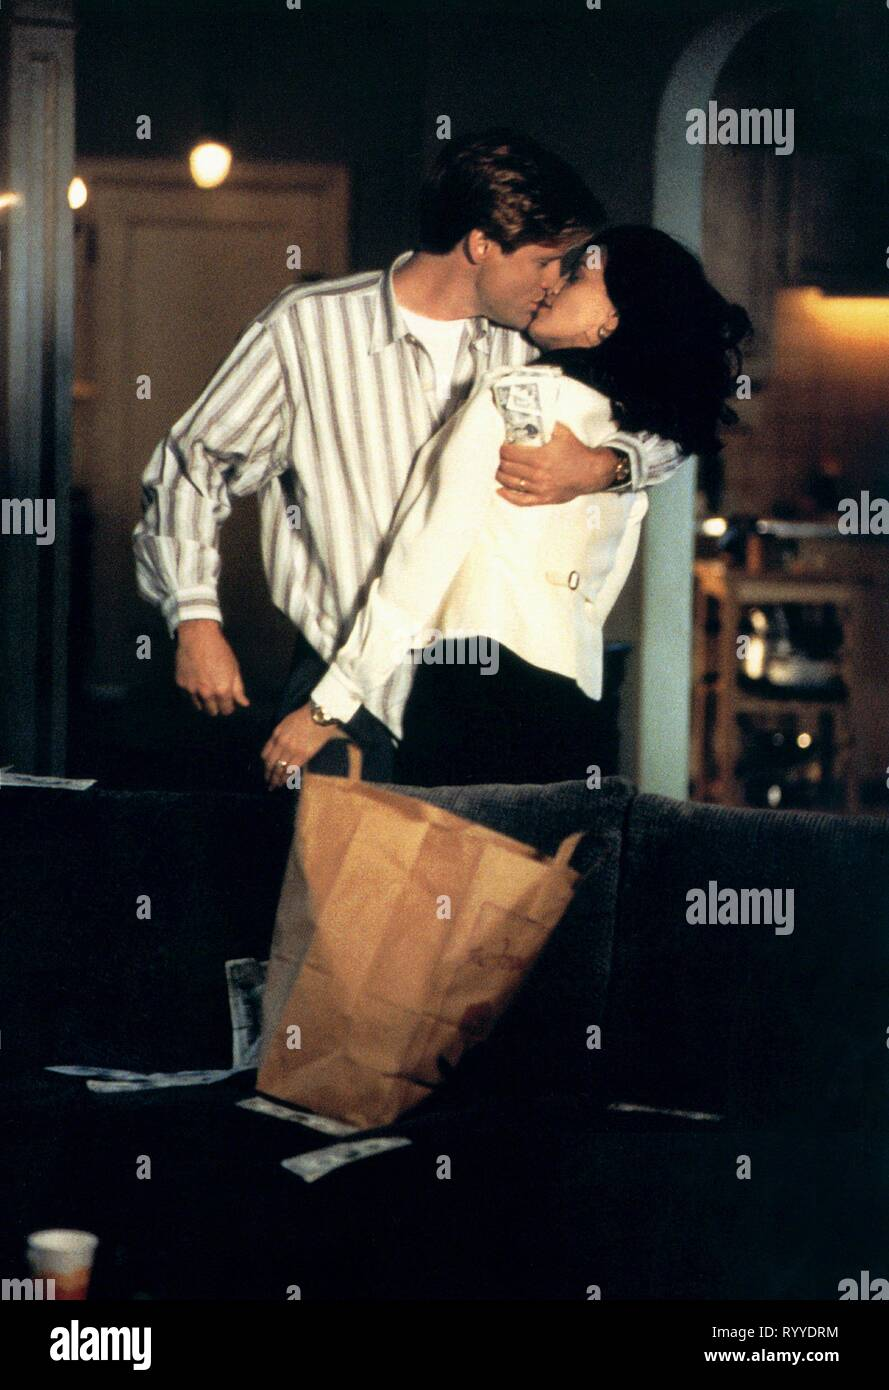 BILL PULLMAN, LINDA FIORENTINO, THE LAST SEDUCTION, 1994 - Stock Image